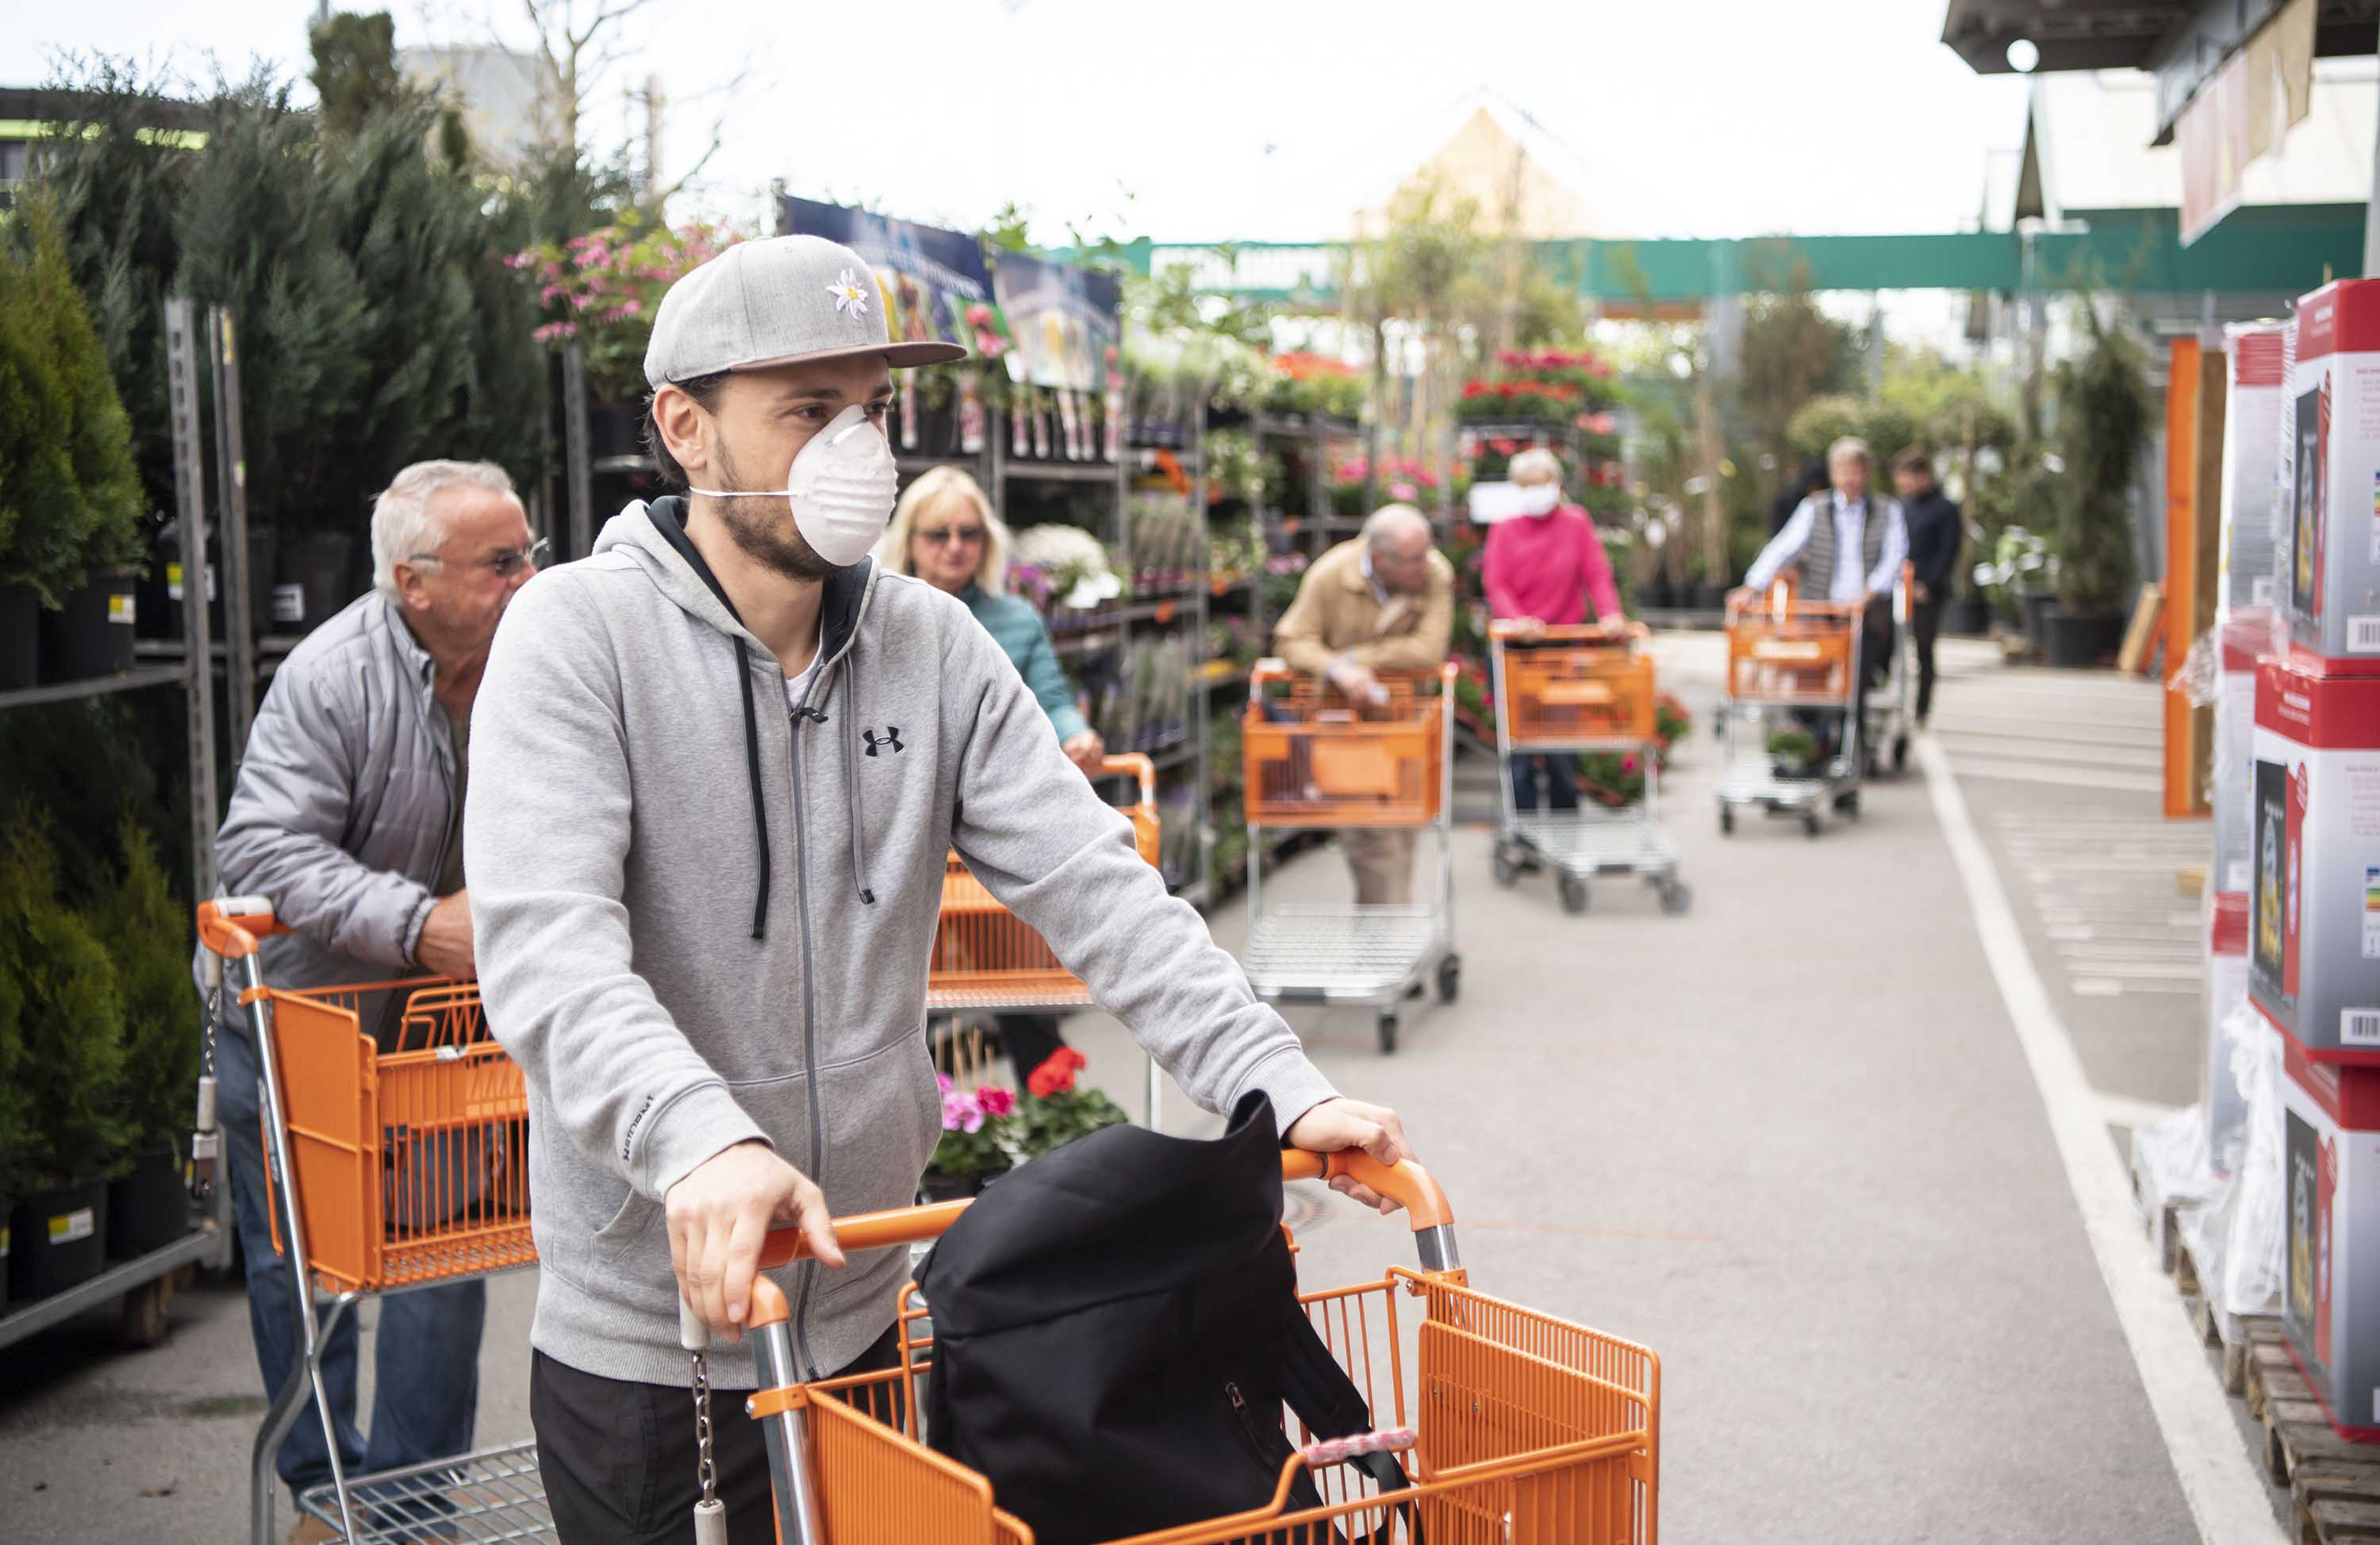 Customers wear protective face masks as they shop at a DIY-store in Munich, Bavaria, Germany, on April 20.